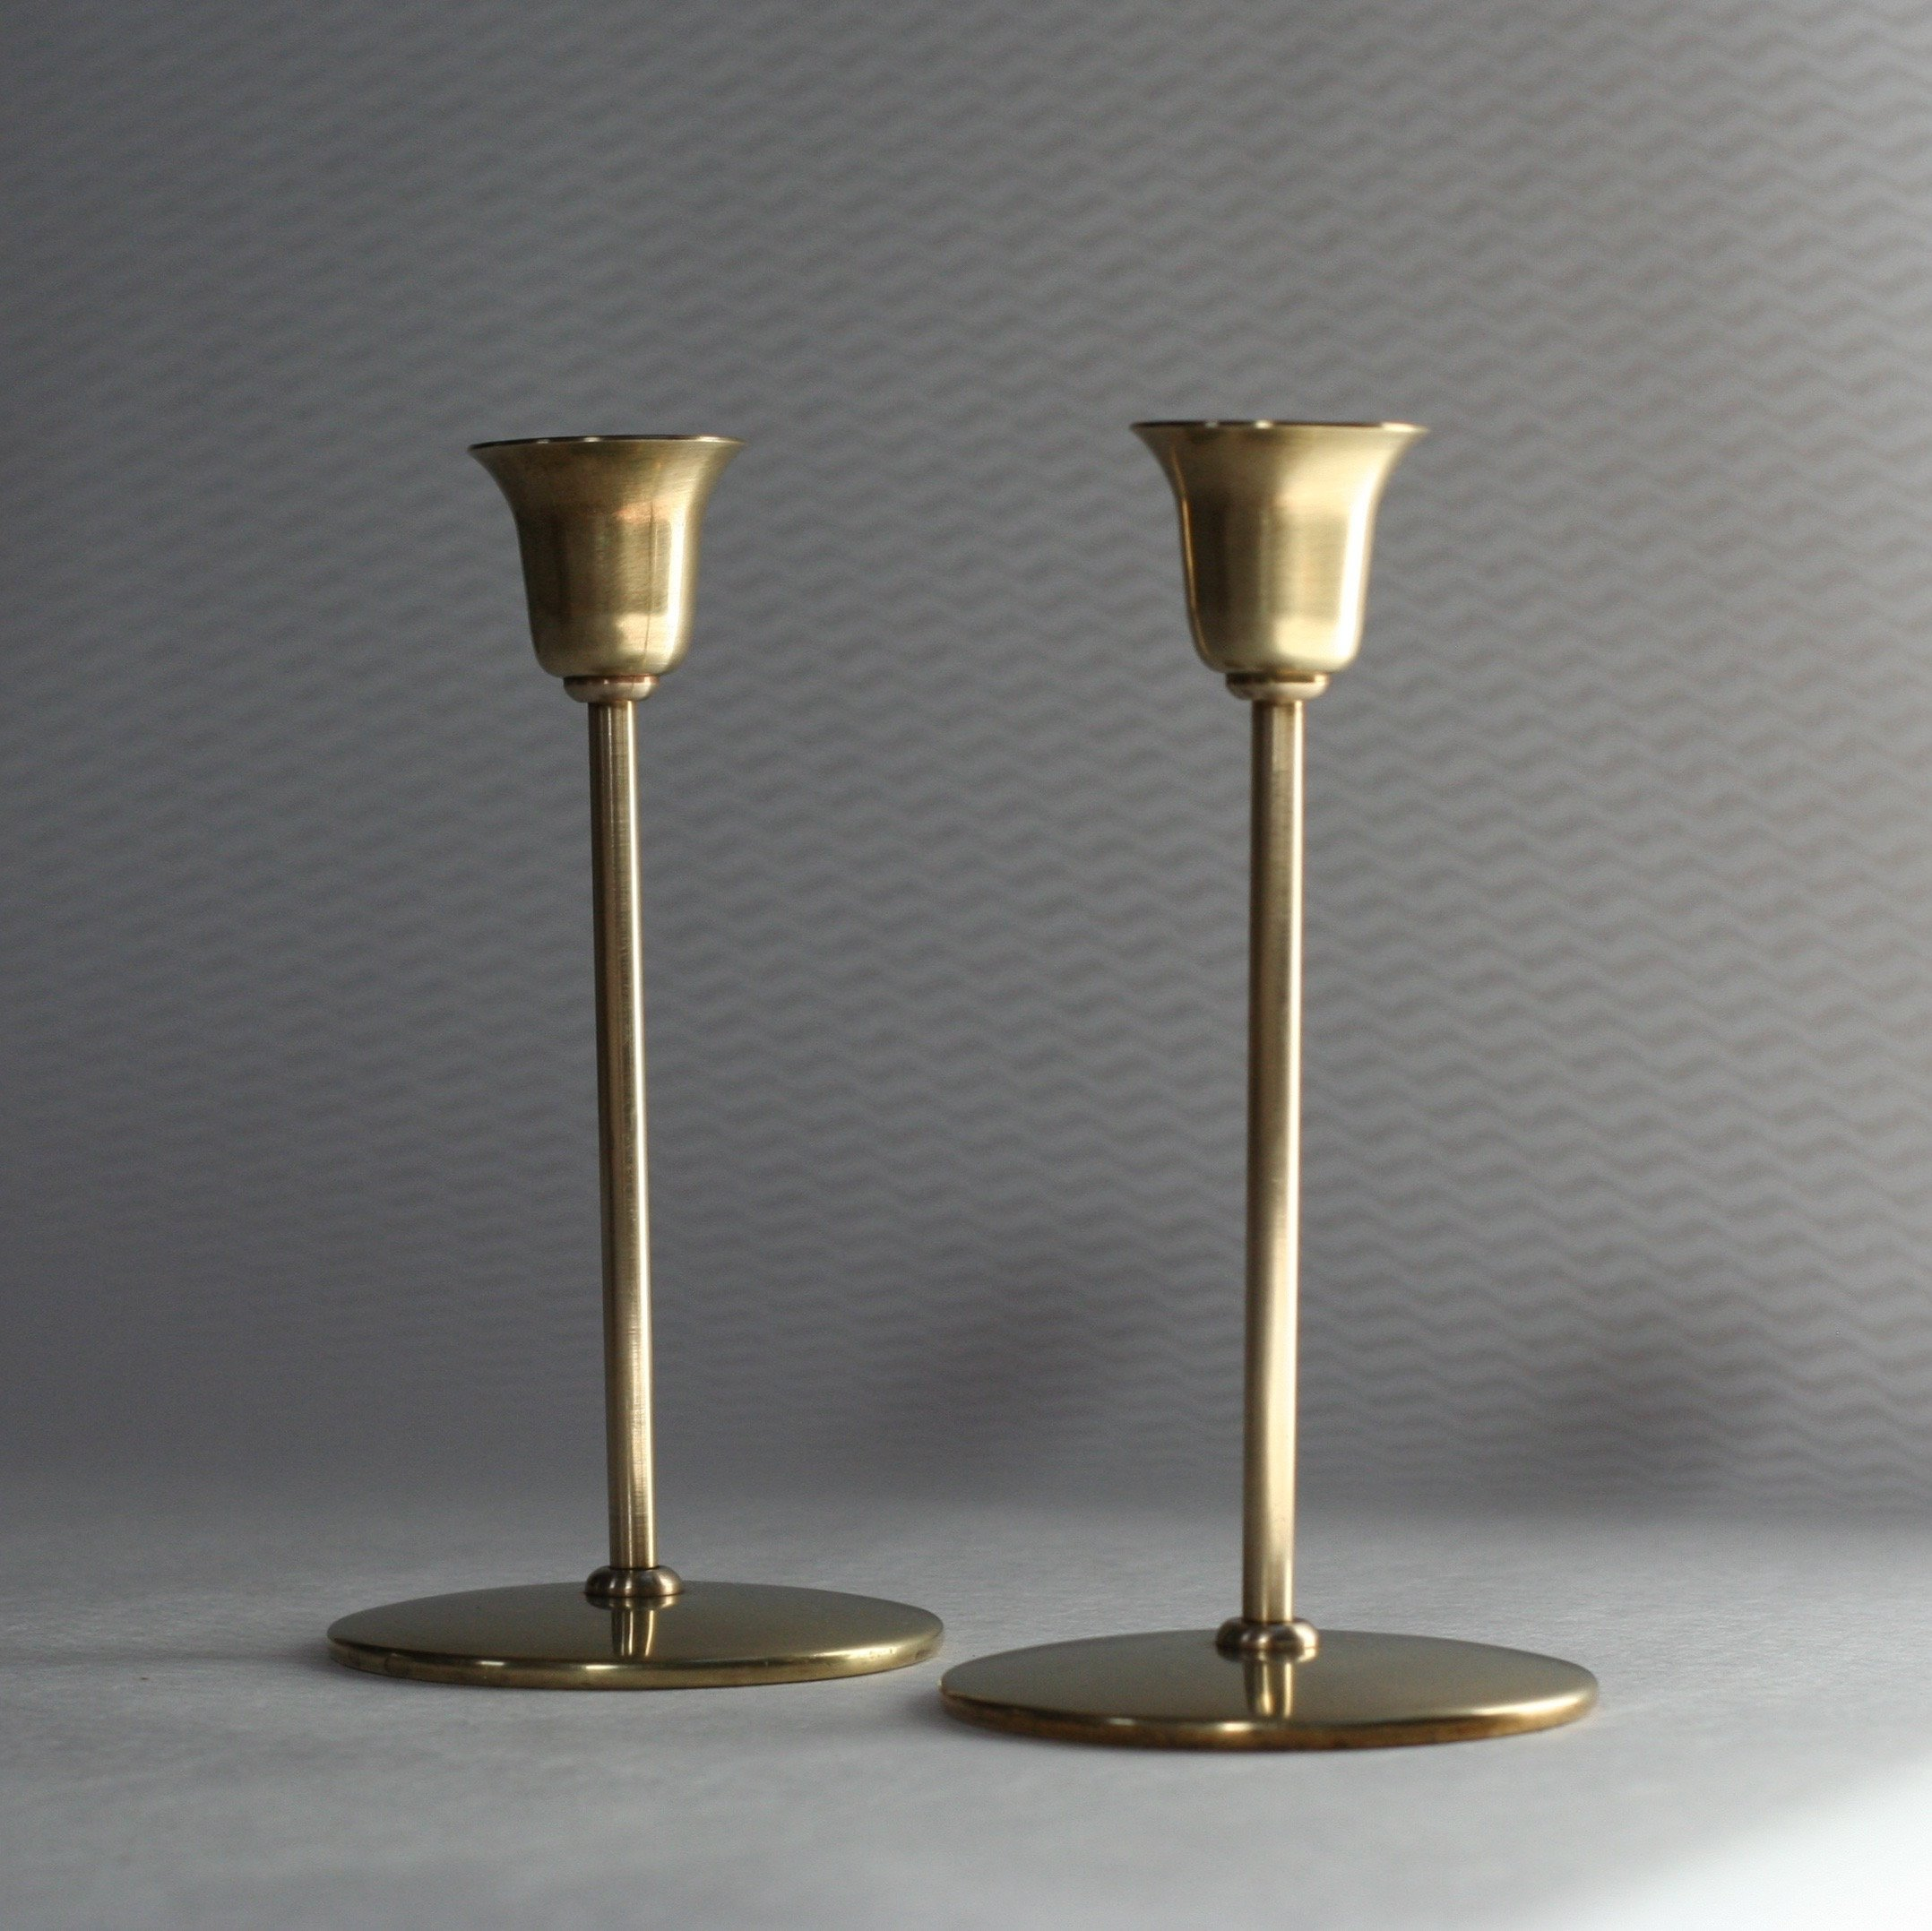 Vintage Pair Of Br Candle Holders